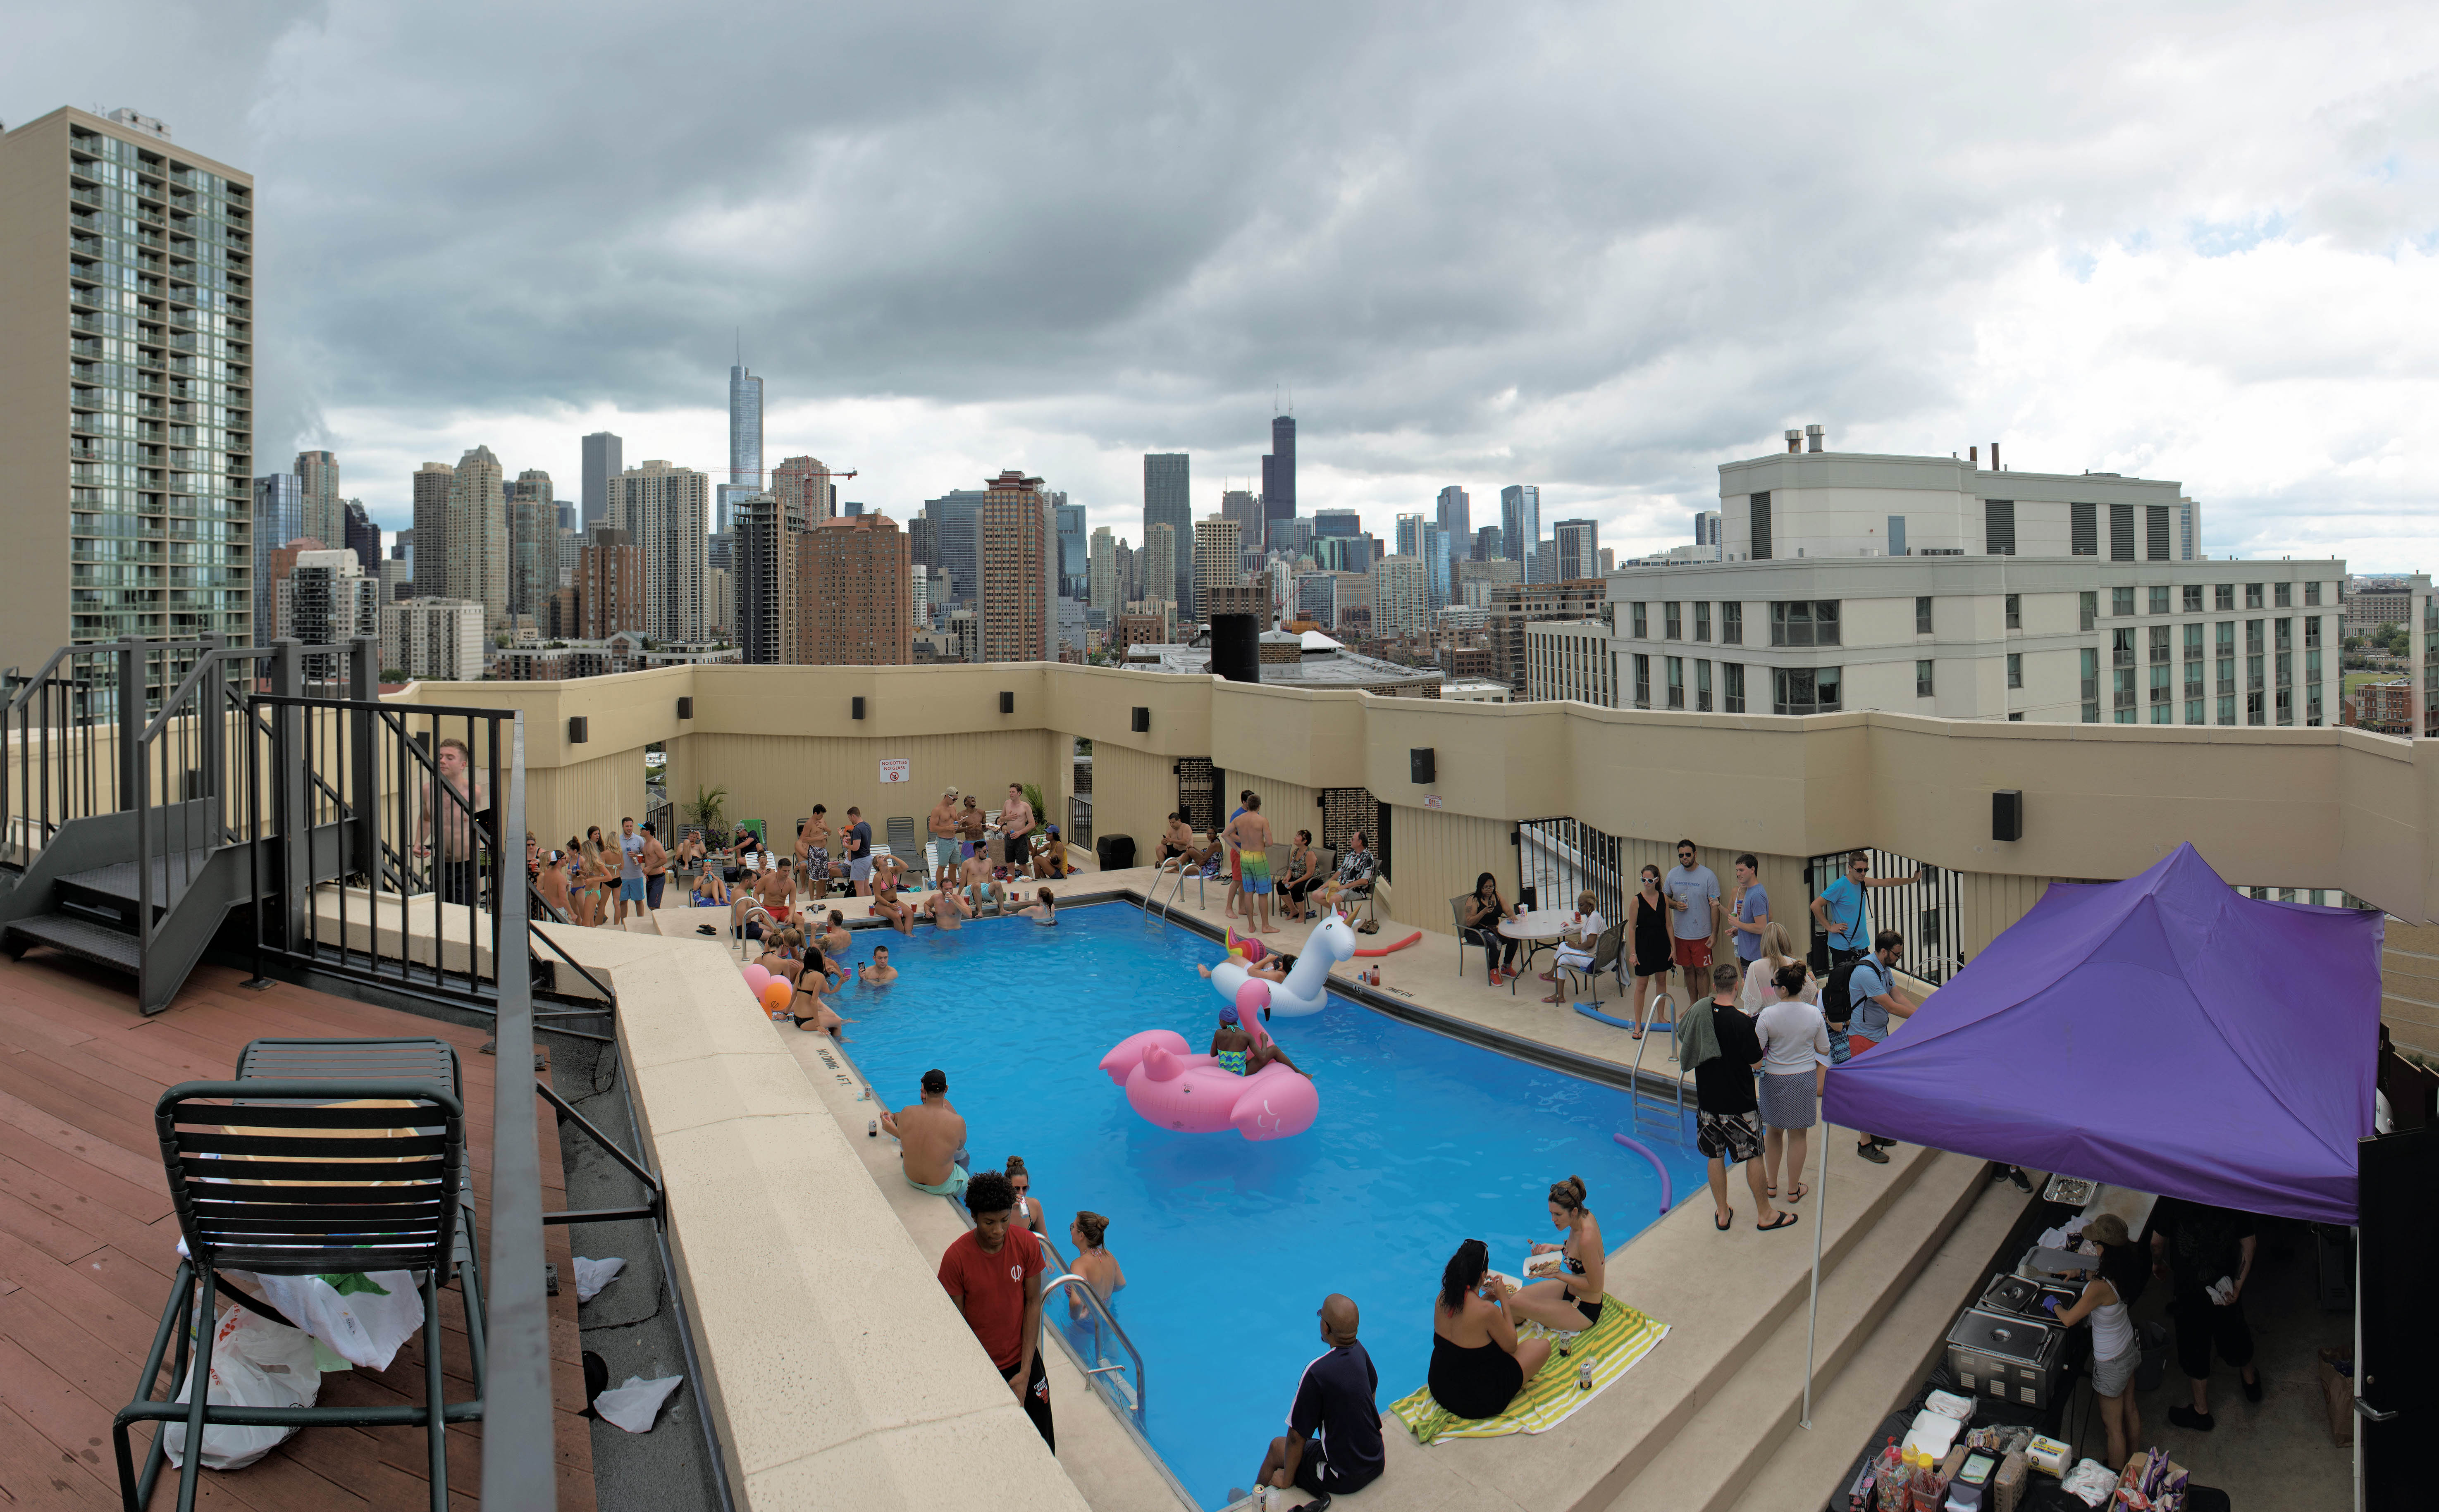 Video A Walk Around The Pool Party At 1120 North Lasalle Yochicago